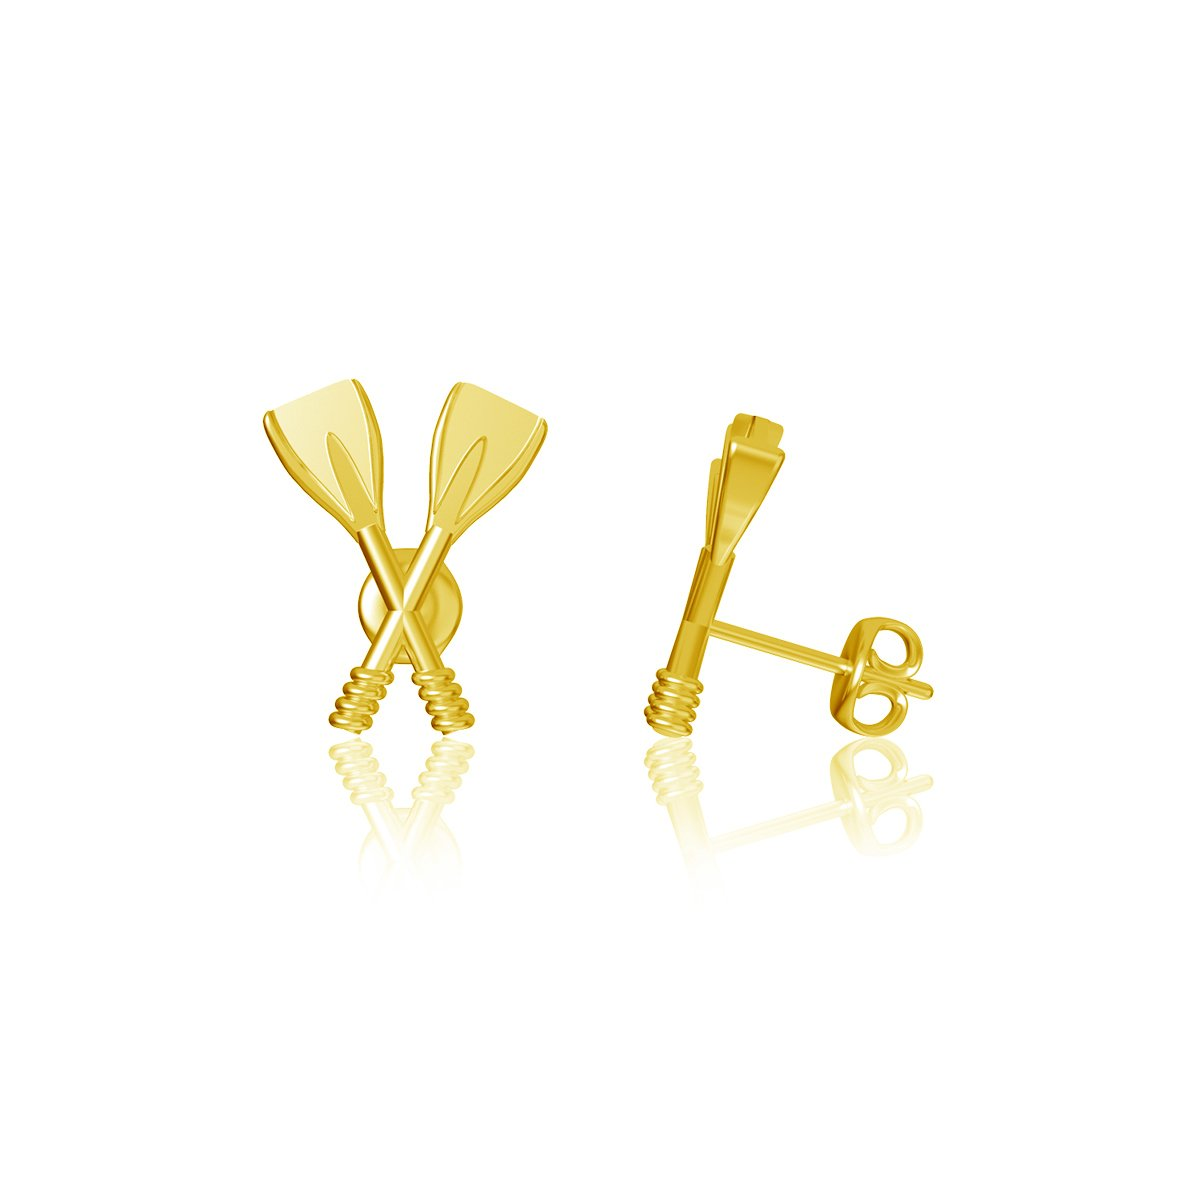 Crew Rowing Post Earrings - Gold Plated